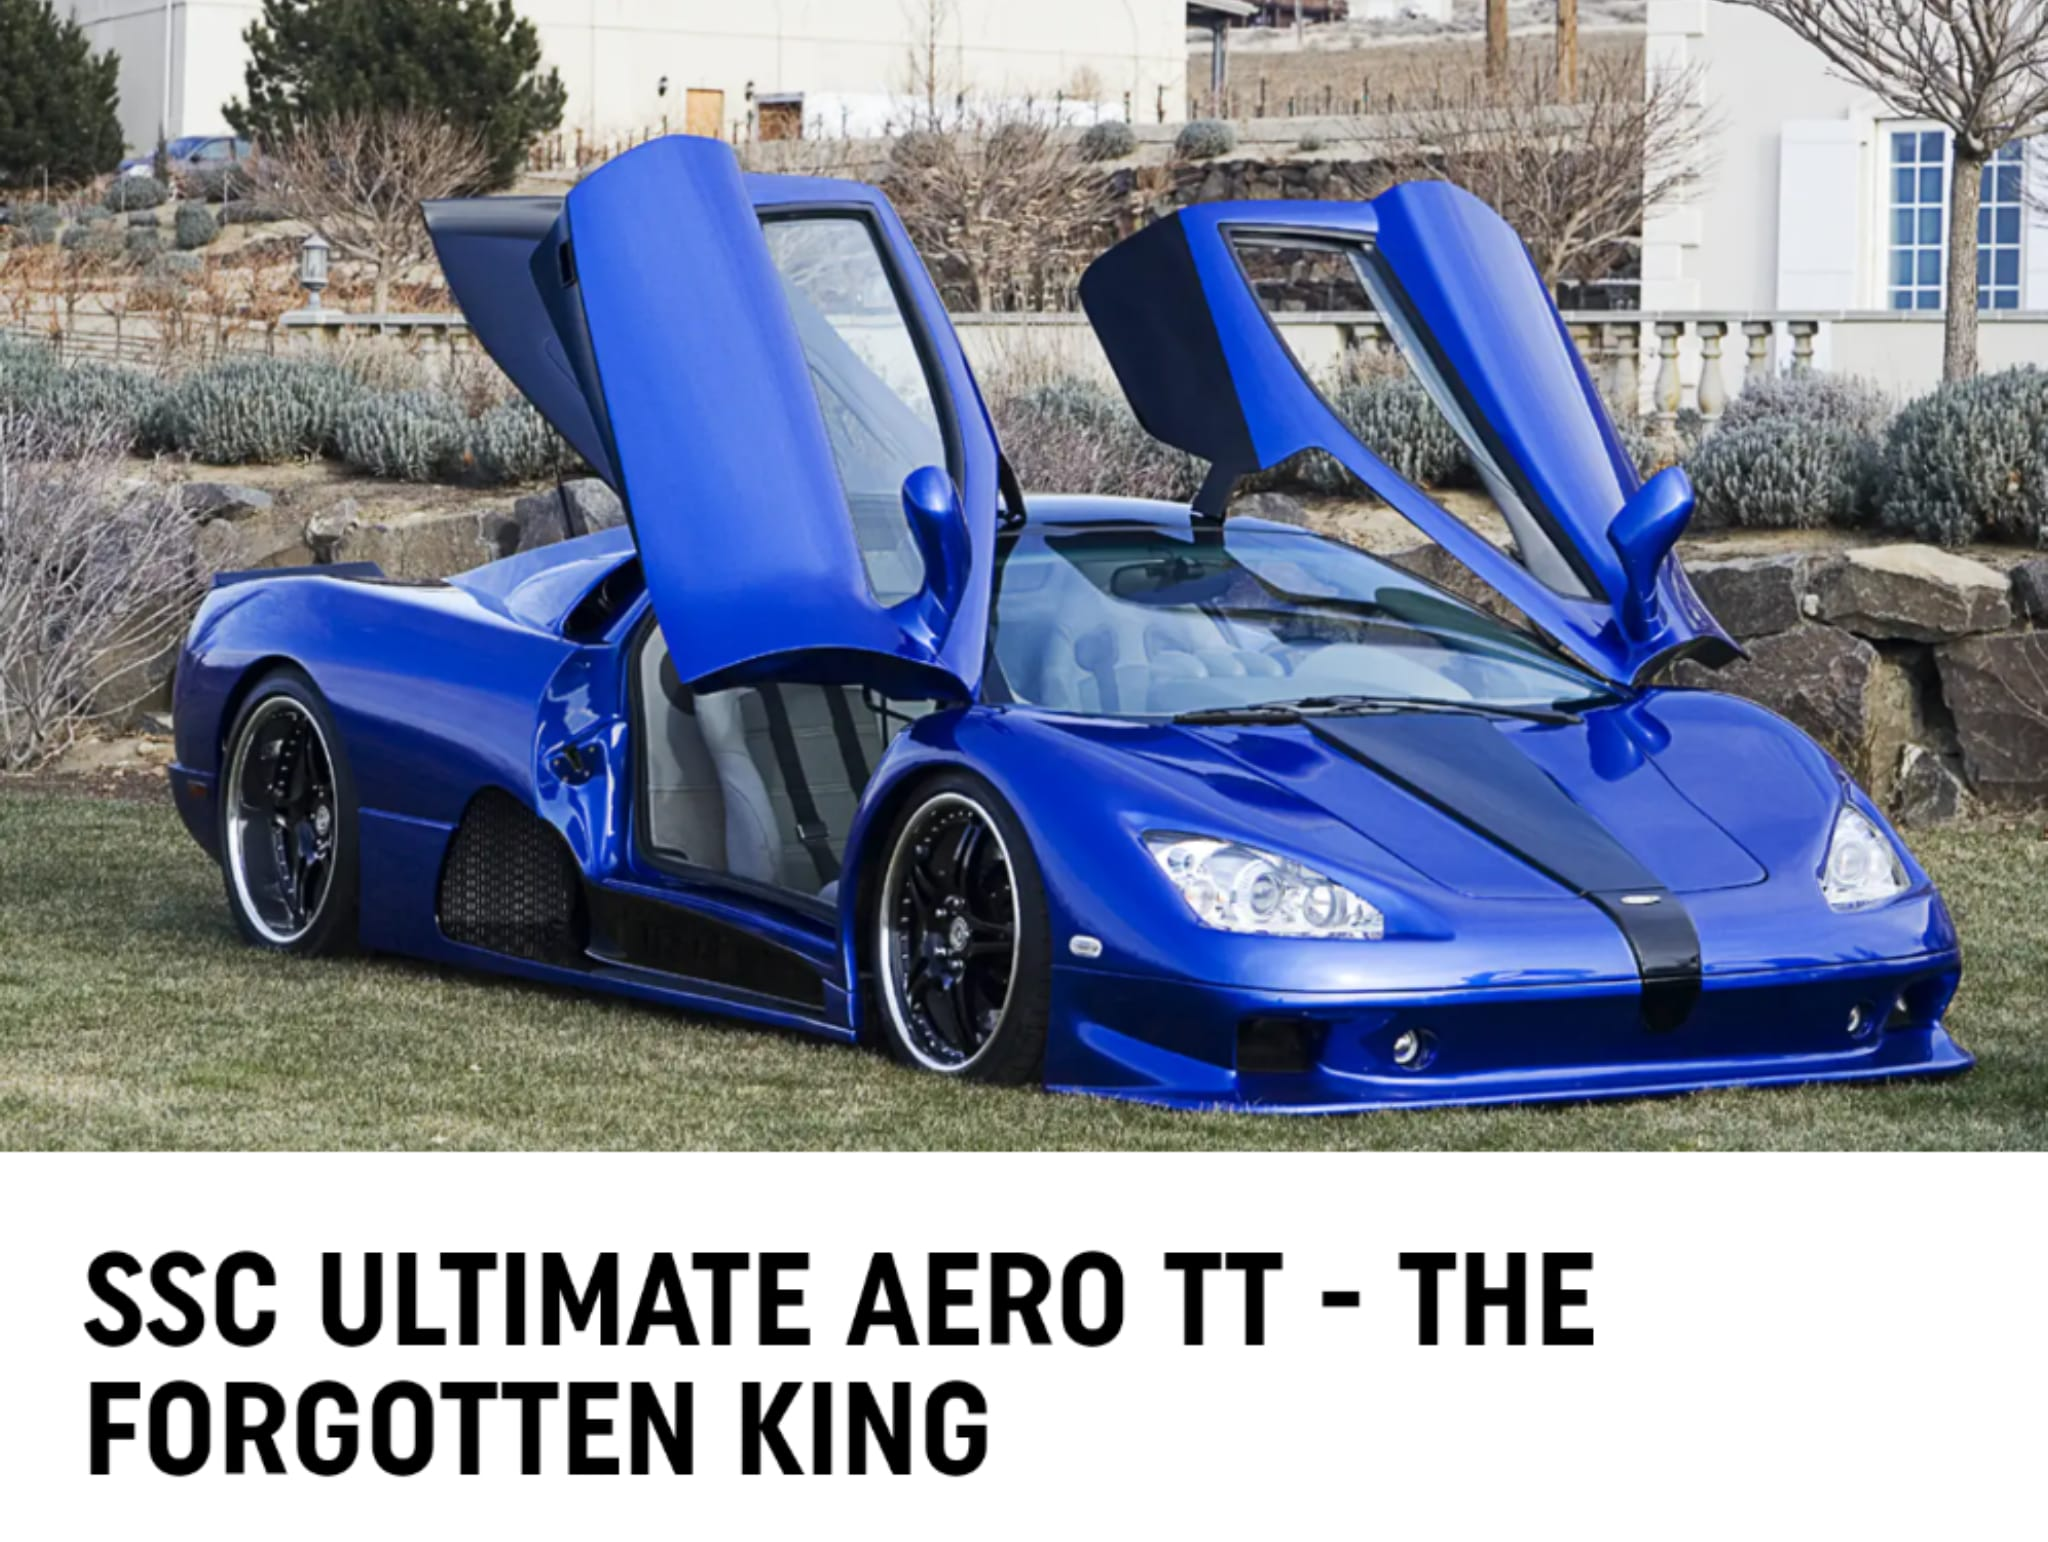 Going up for auction SSC Ultimate Aero VIN number 001 the forgotten King at Mecum auctions Saturday August 14th in Monterey.